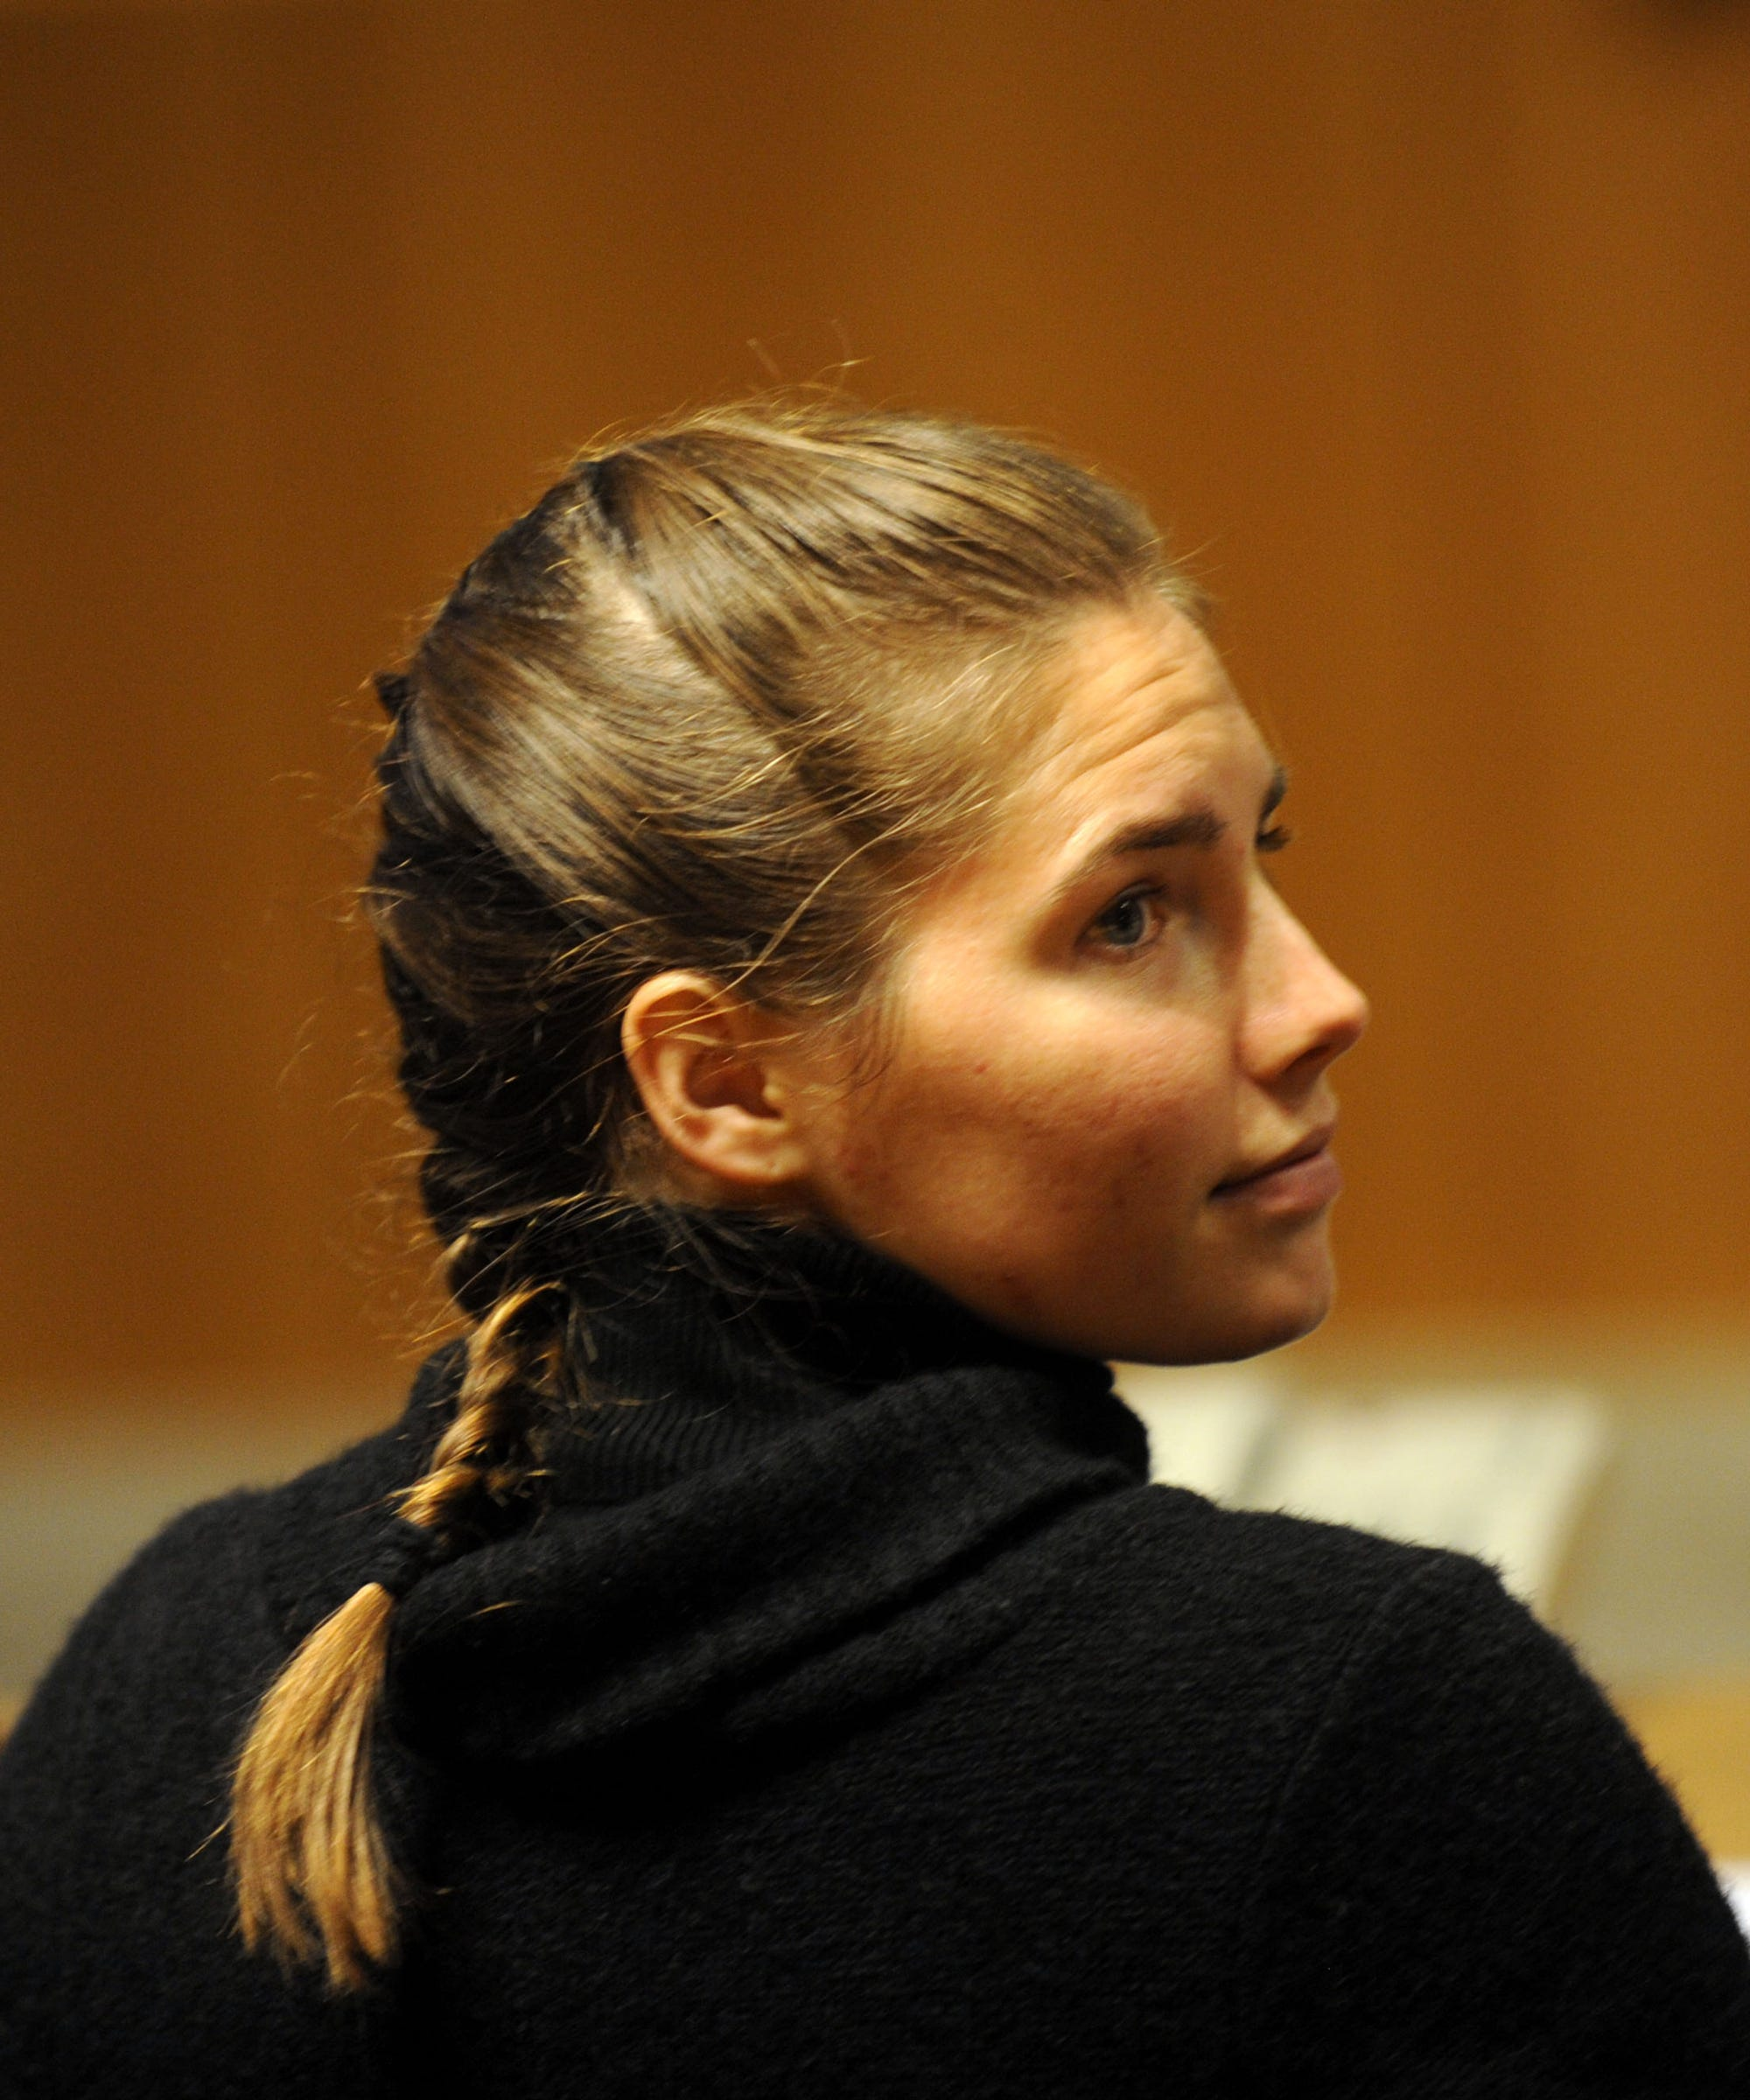 amanda knox trial Amanda knox immediately became a person of interest to investigators, mostly, as they would testify later, because they thought her behavior was out of the ordinary amanda was the first flatmate that the police encountered when they arrived on the scene, and she became their first suspect.